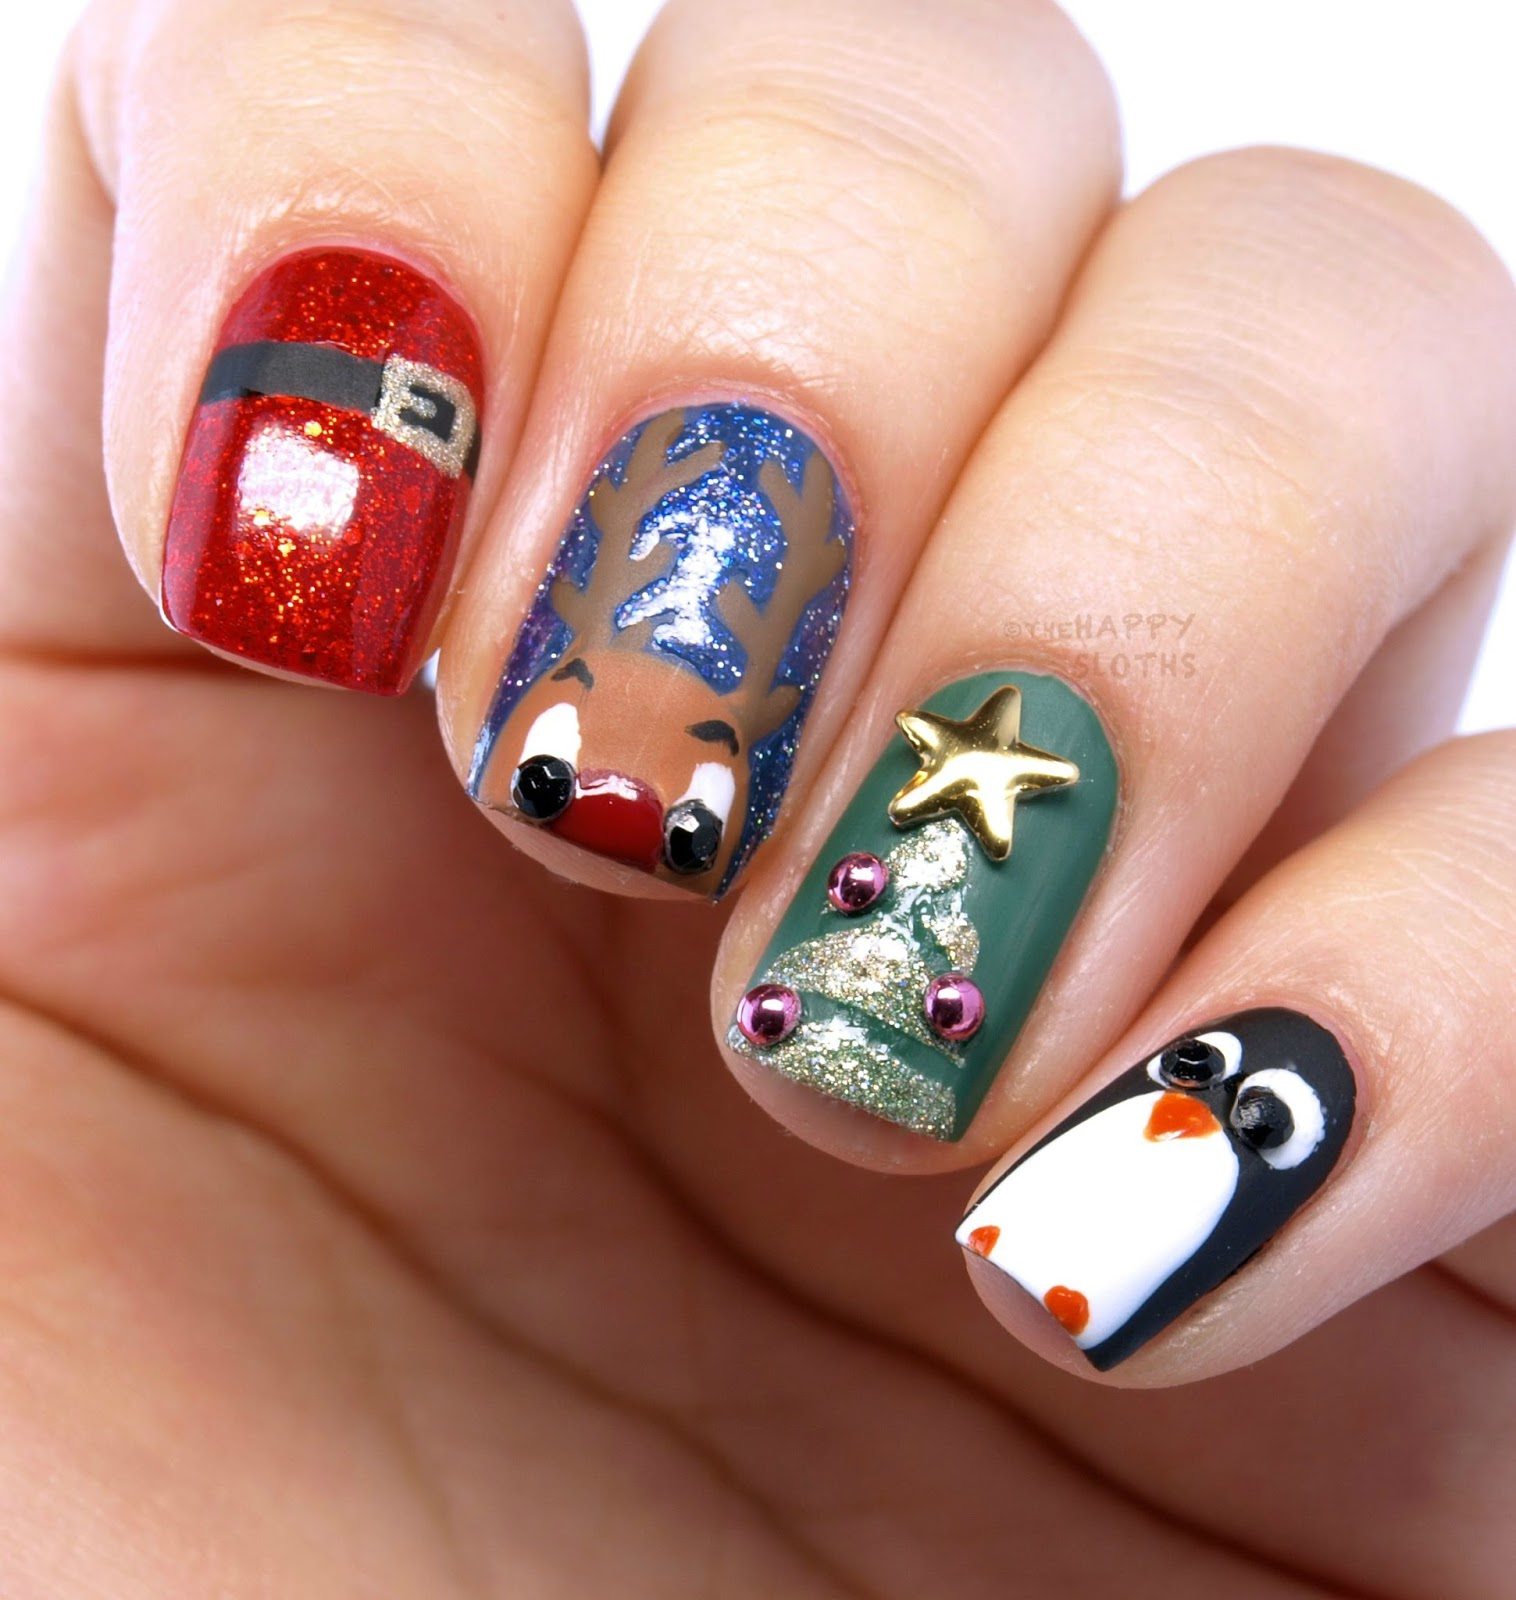 Christmas Nails: Santa's Suit, Reindeer, Christmas Tree & A Penguin Cutie